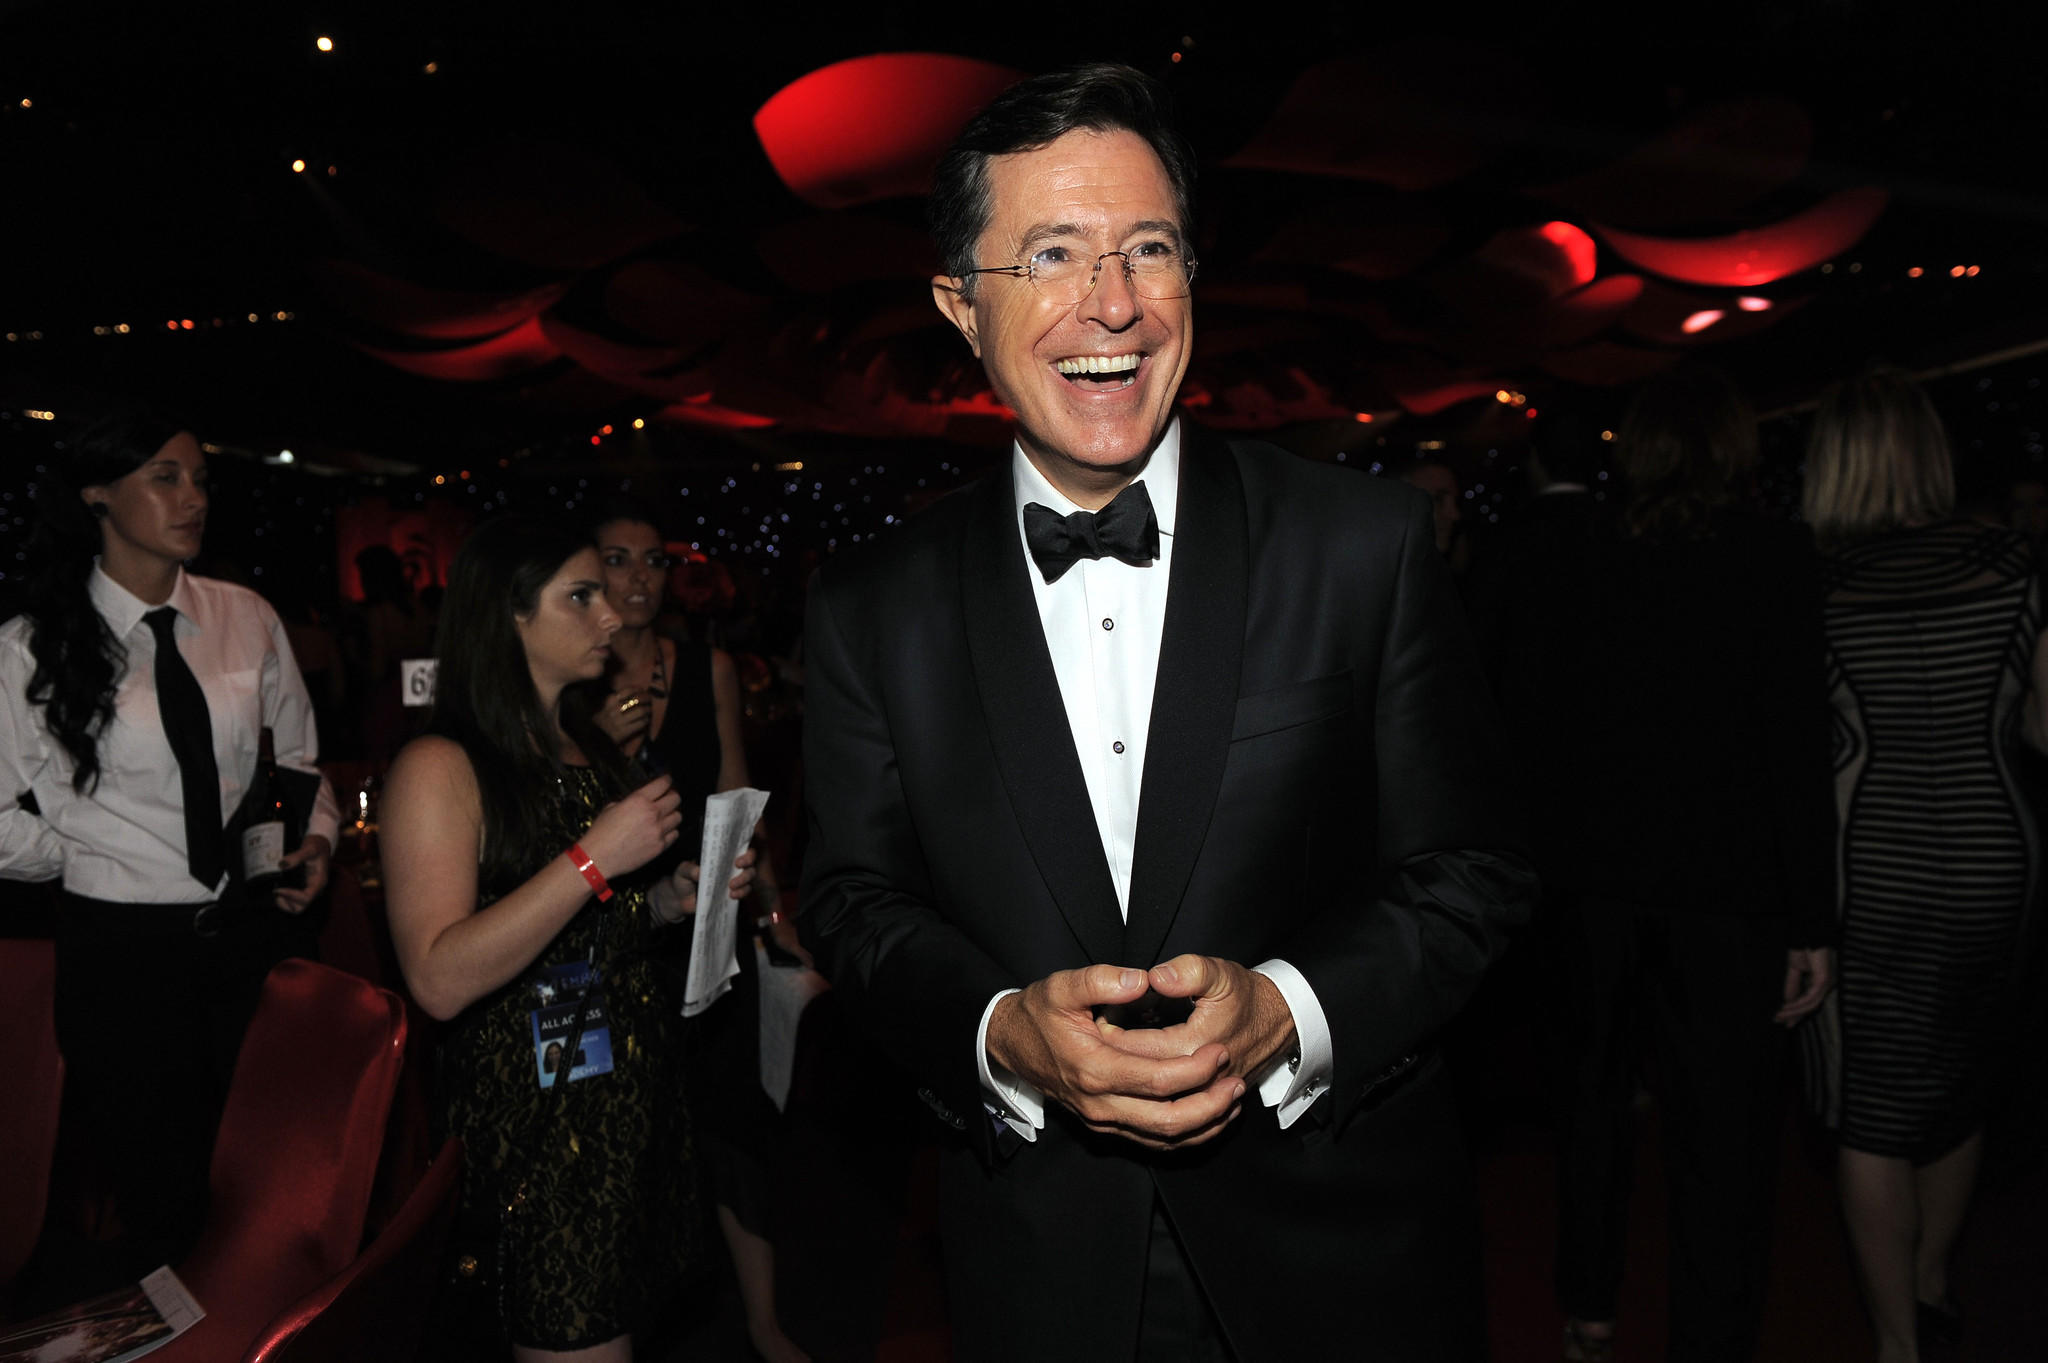 Stephen Colbert will be replacing David Letterman on CBS sometime next year.